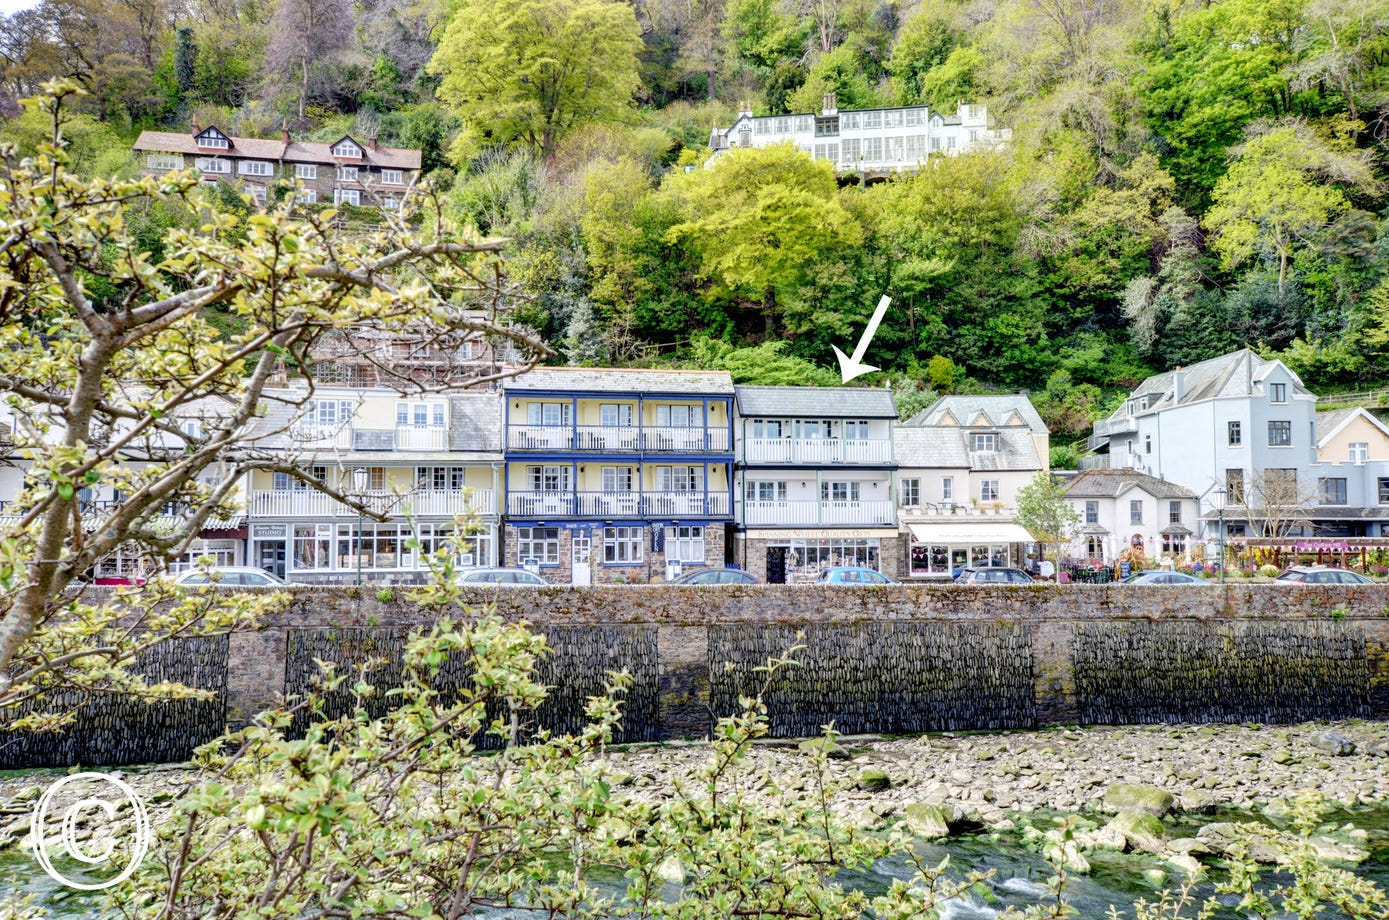 Being directly on the front it offers the most wonderful views over the river, harbour and coastal headlands in the renown Exmoor village of Lynmouth